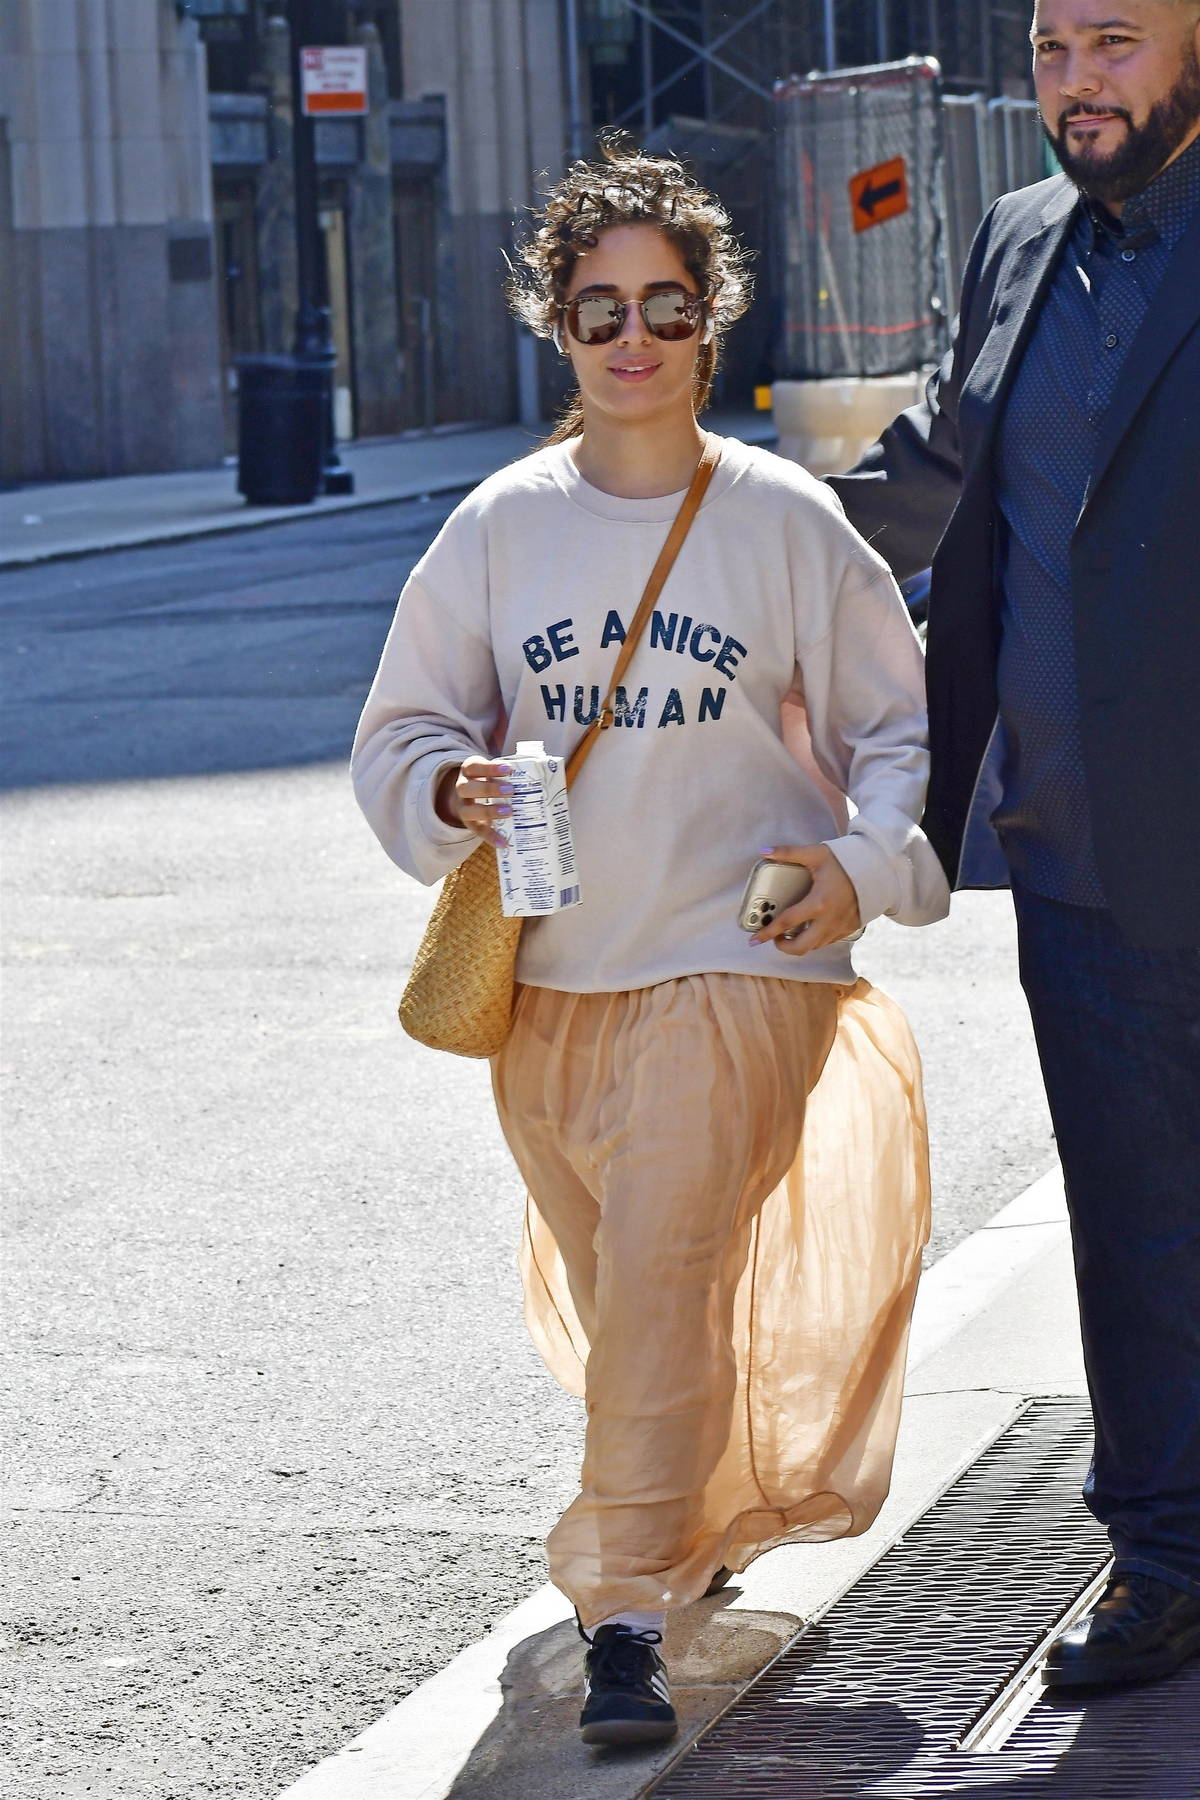 Camila Cabello wears a 'Be A Nice Human' sweatshirt and peach skirt while out in New York City